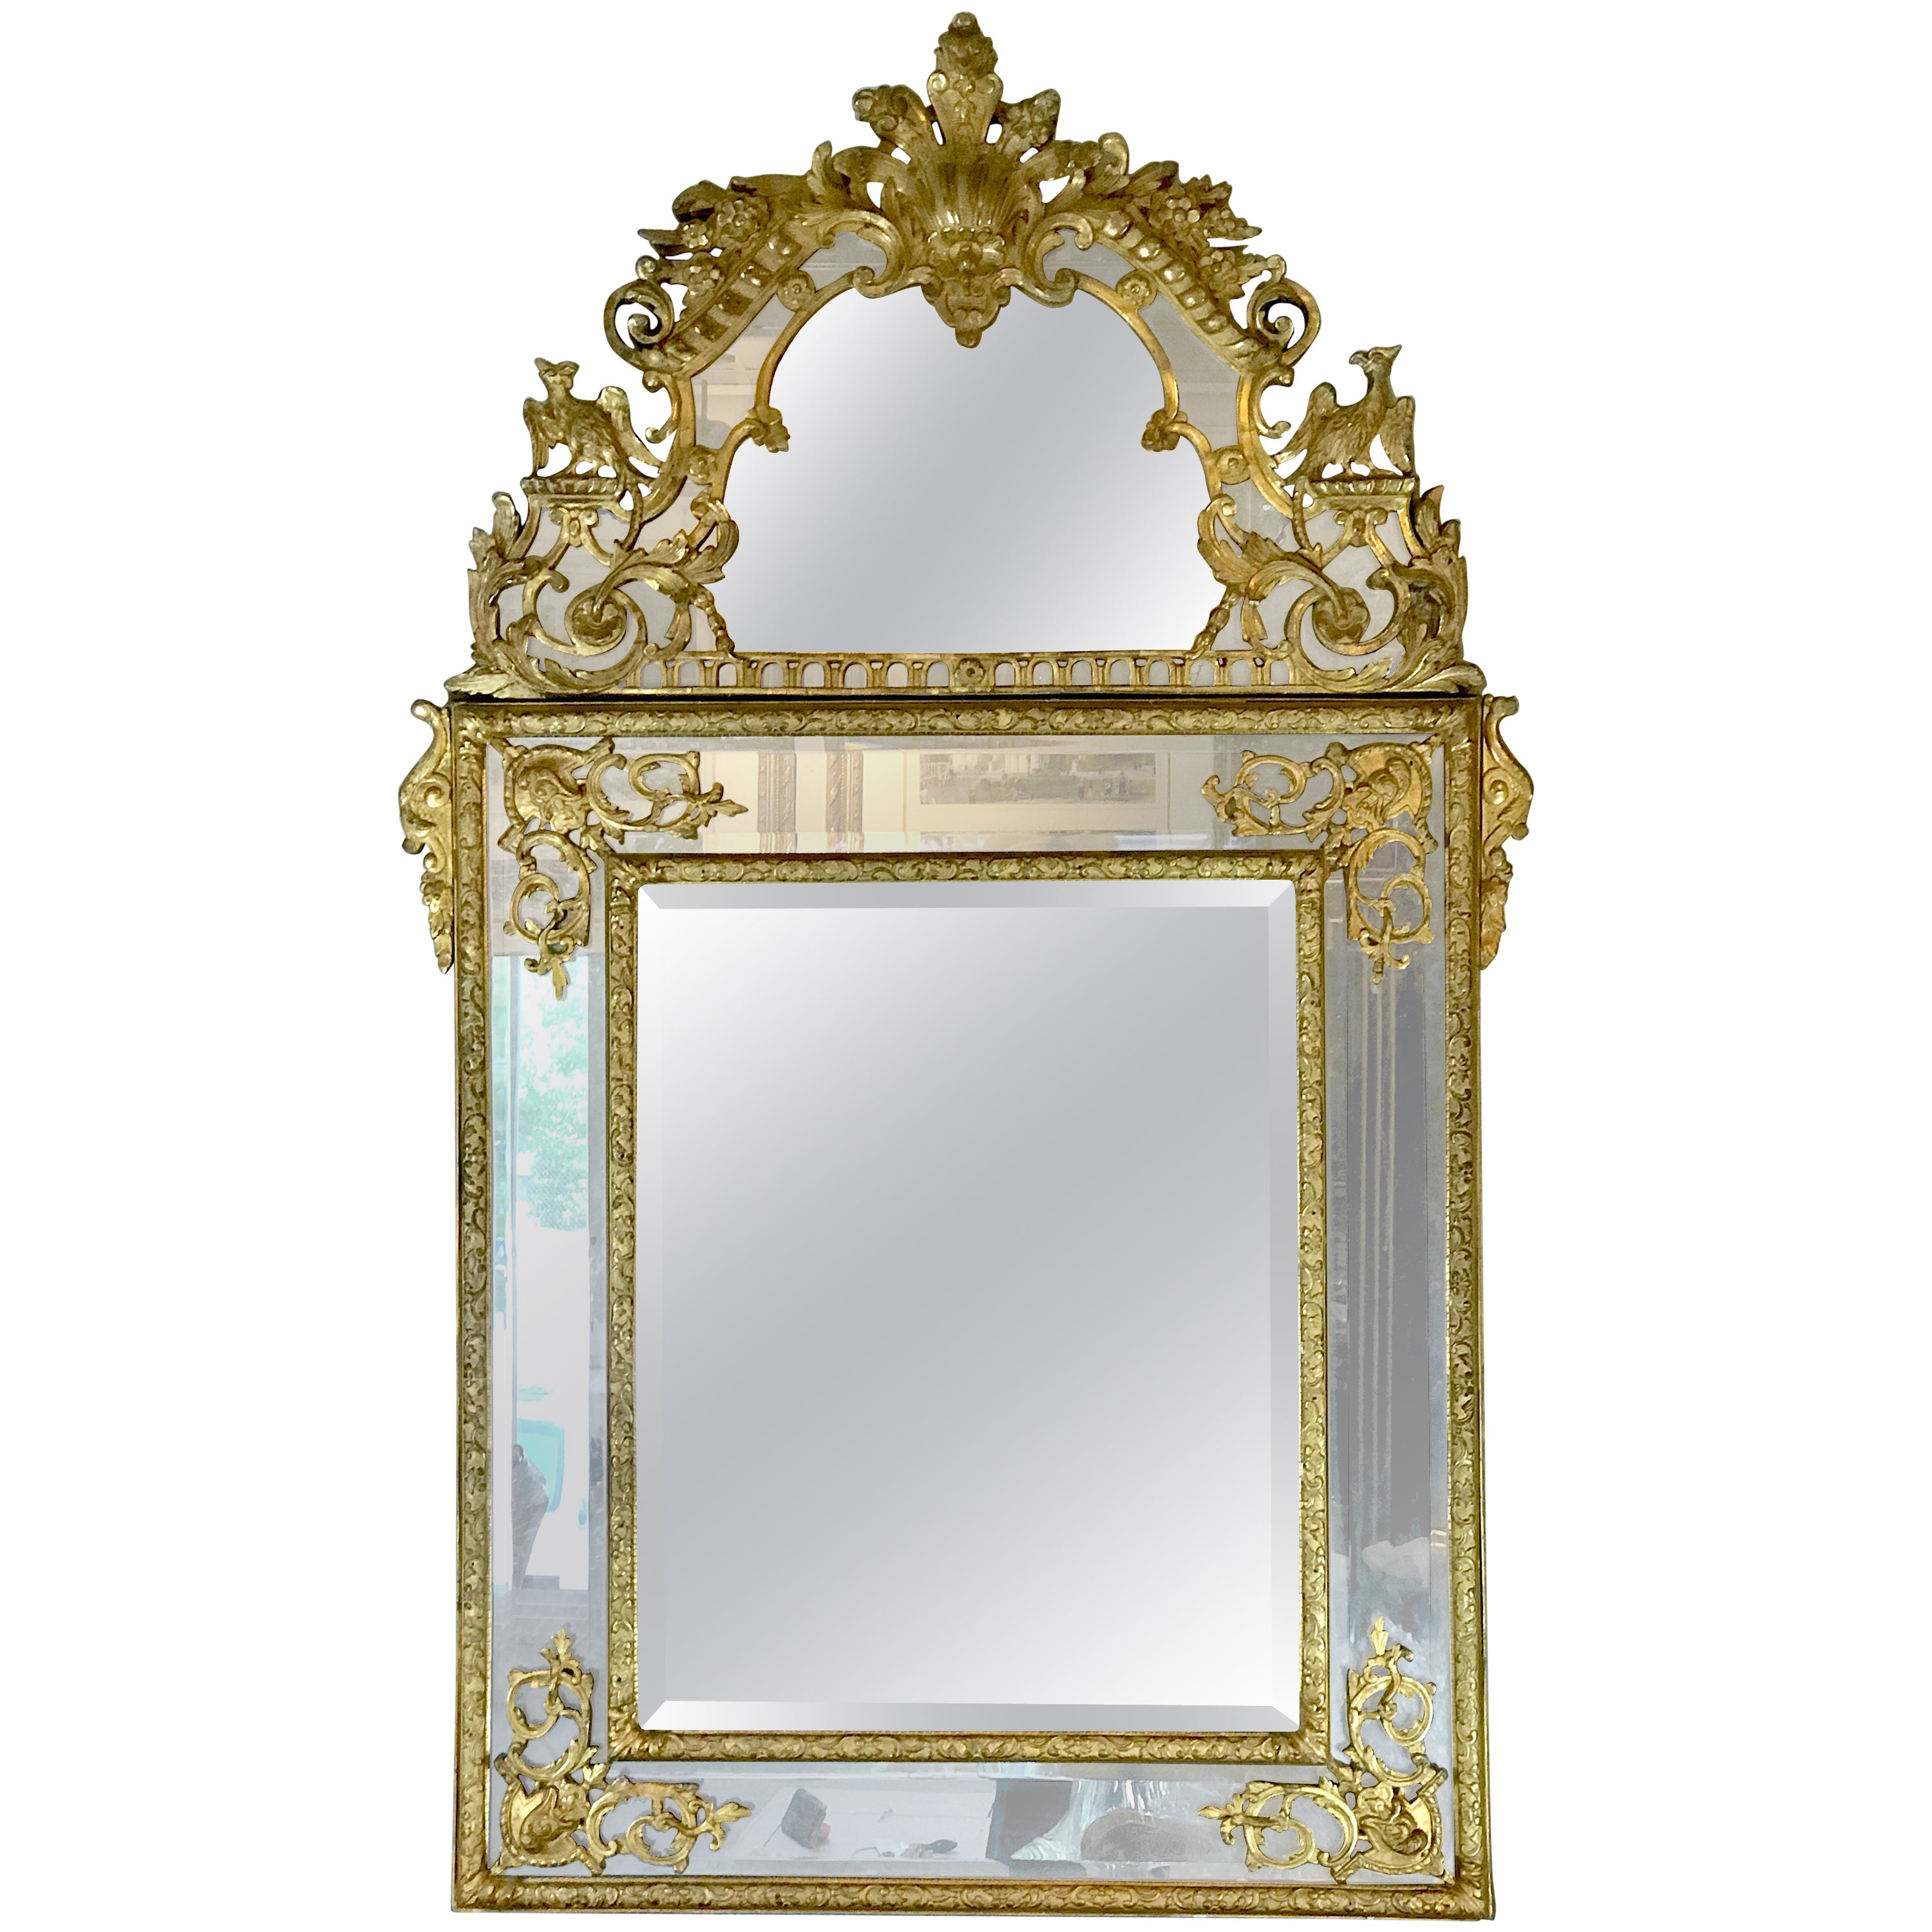 19th Century French Regence Style Giltwood Mirror